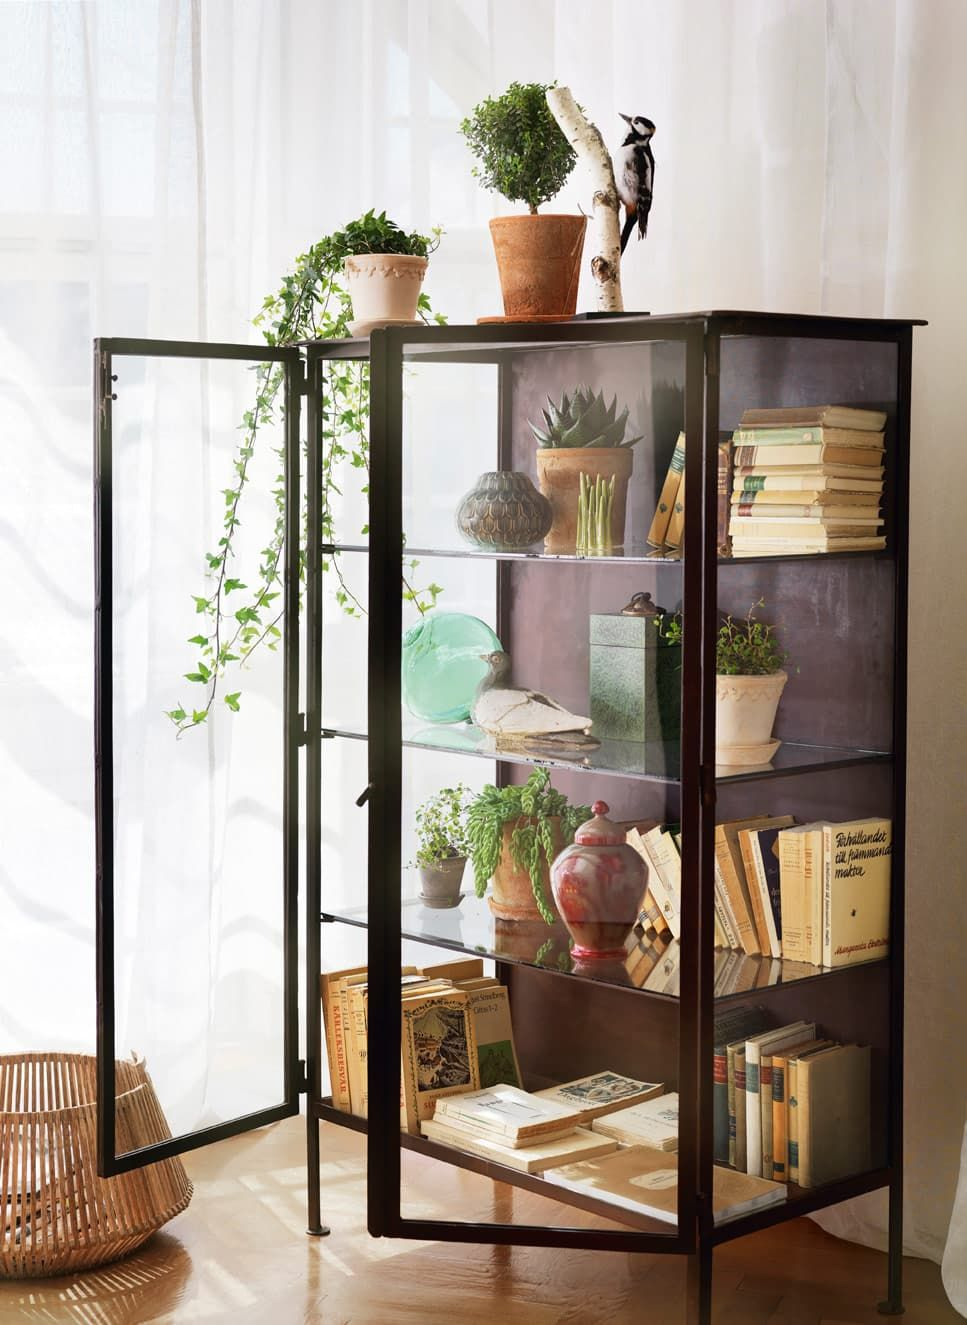 curio cabinet comeback display cases in modern rooms. Black Bedroom Furniture Sets. Home Design Ideas